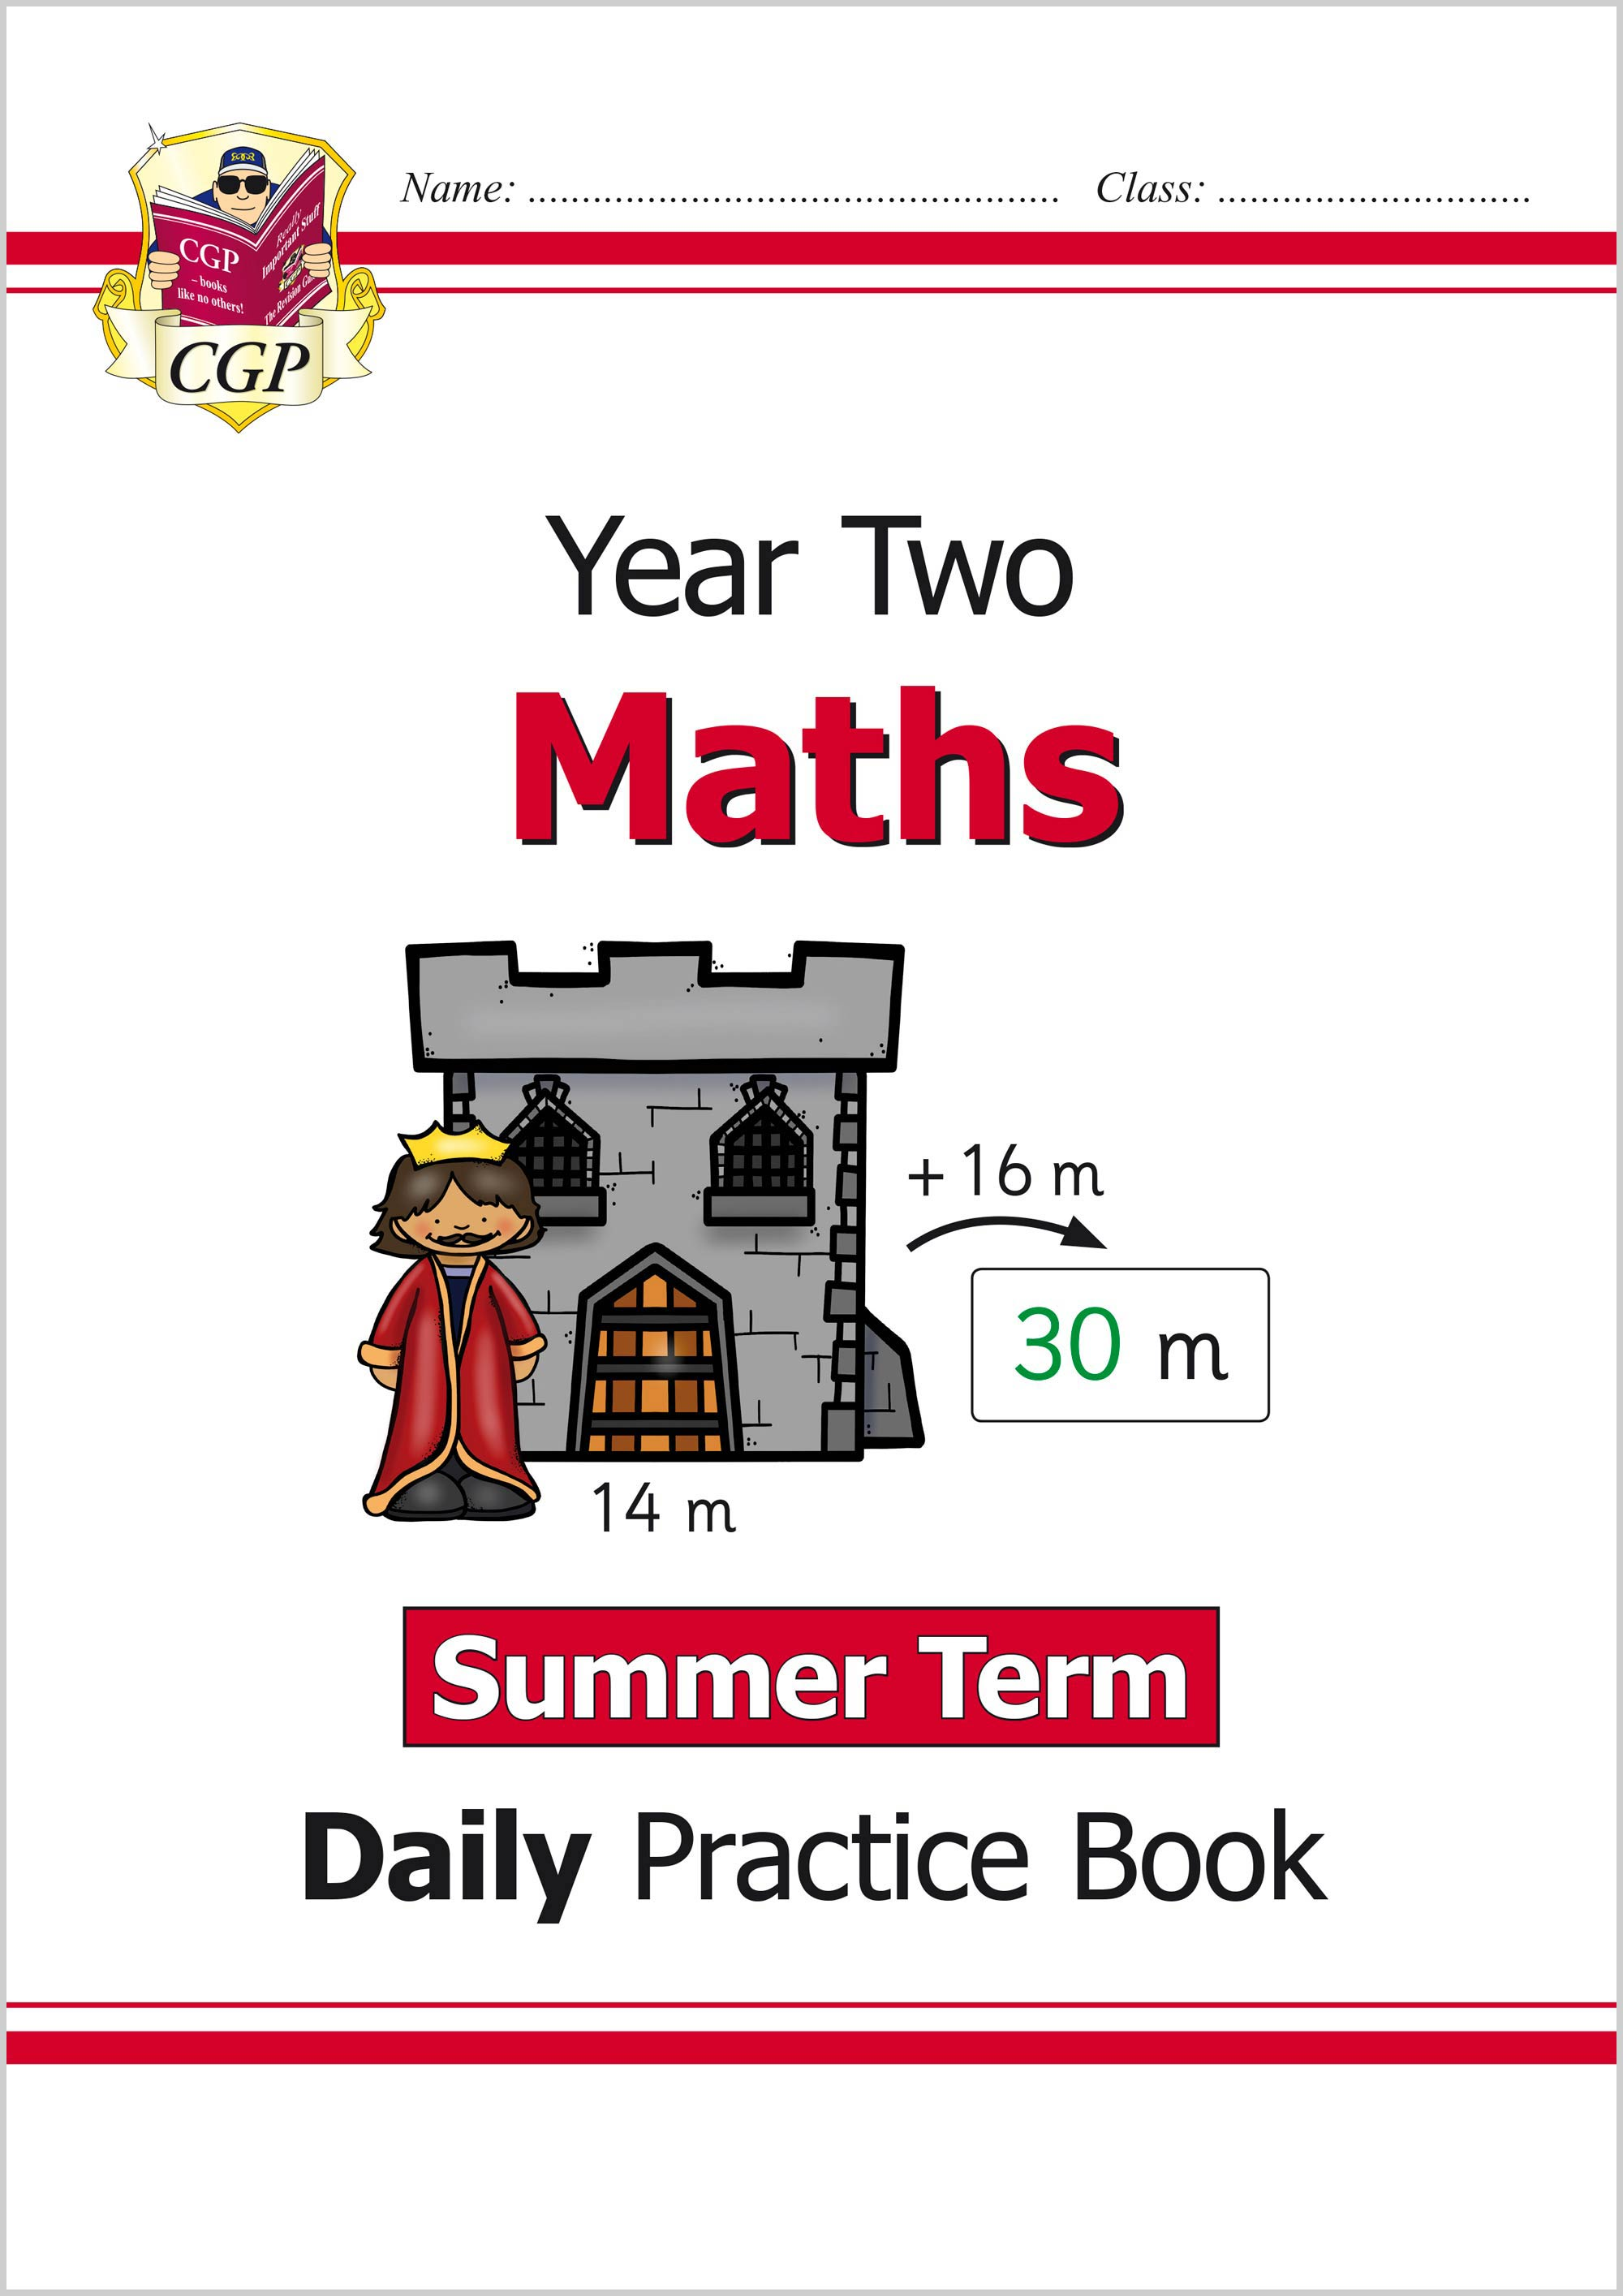 M2WSU11 - New KS1 Maths Daily Practice Book: Year 2 - Summer Term